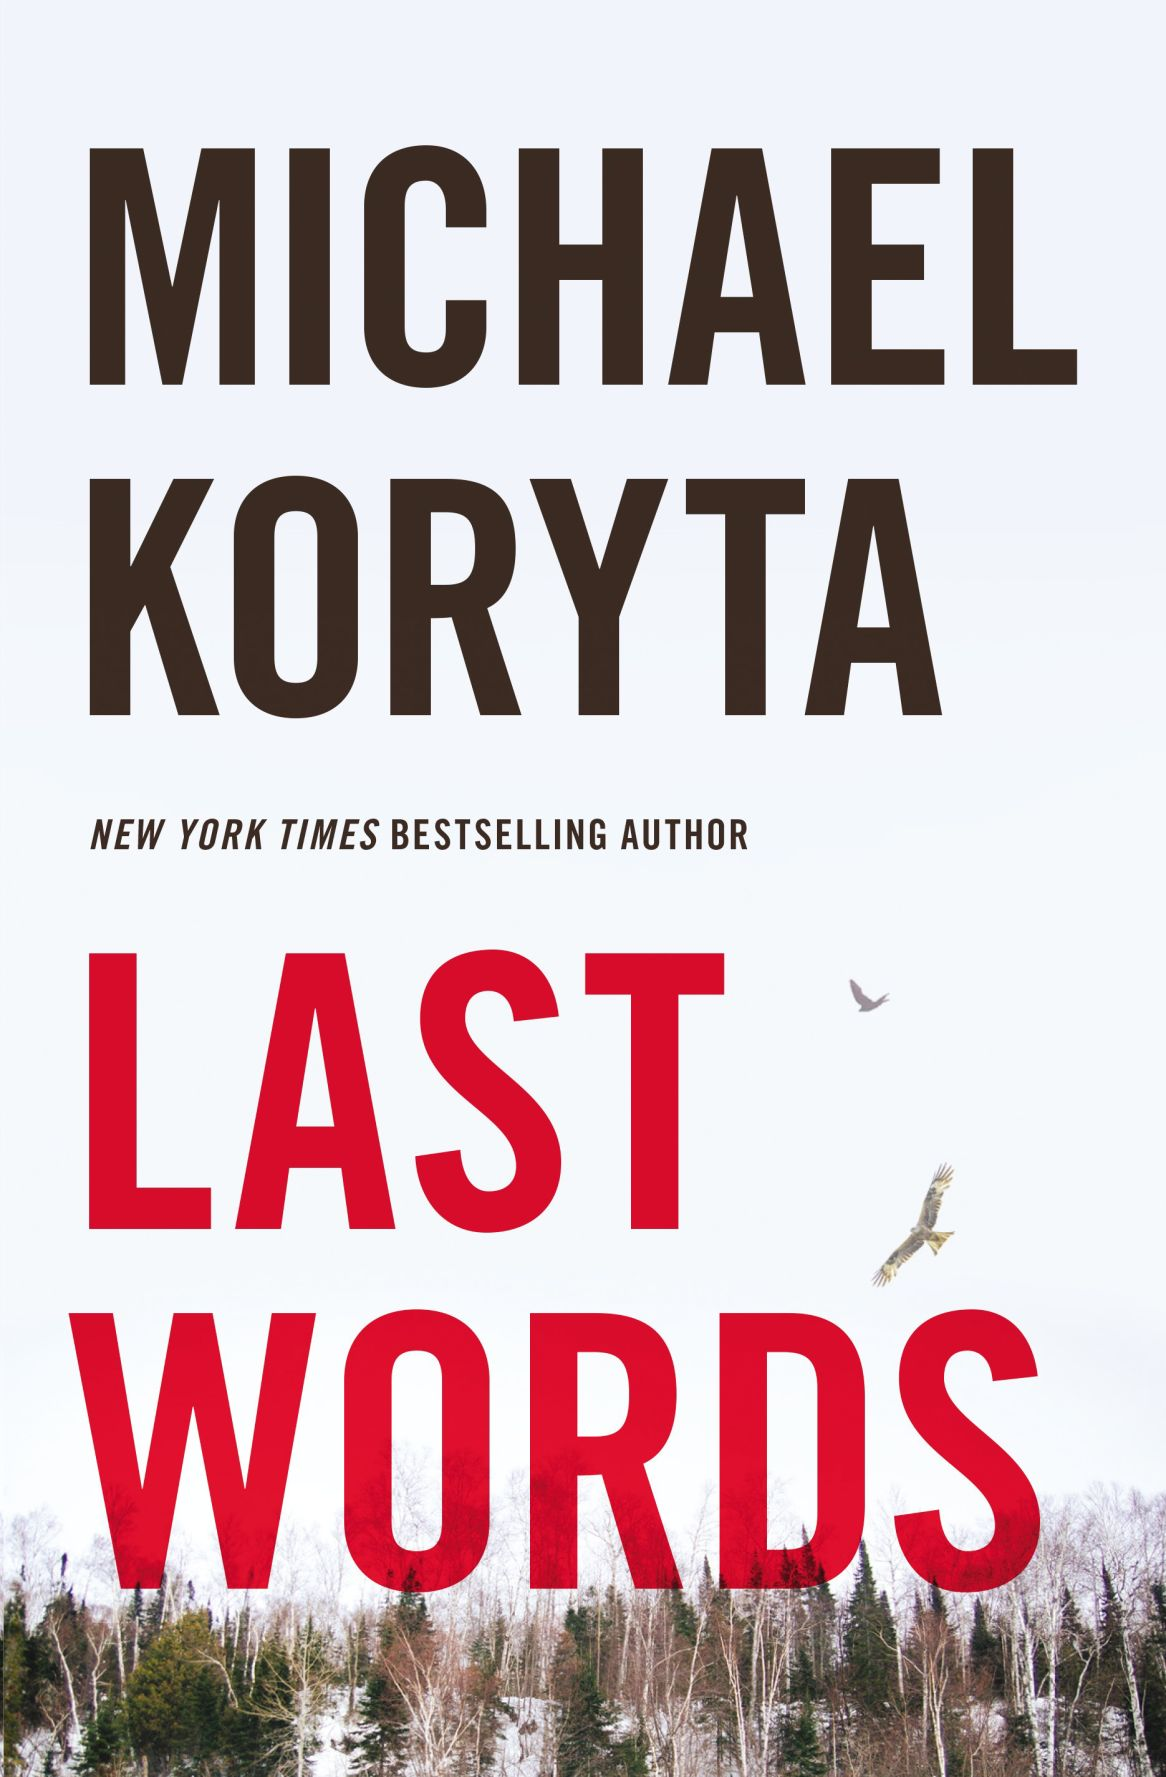 Review and Q&A over Michael Koryta's Last Words